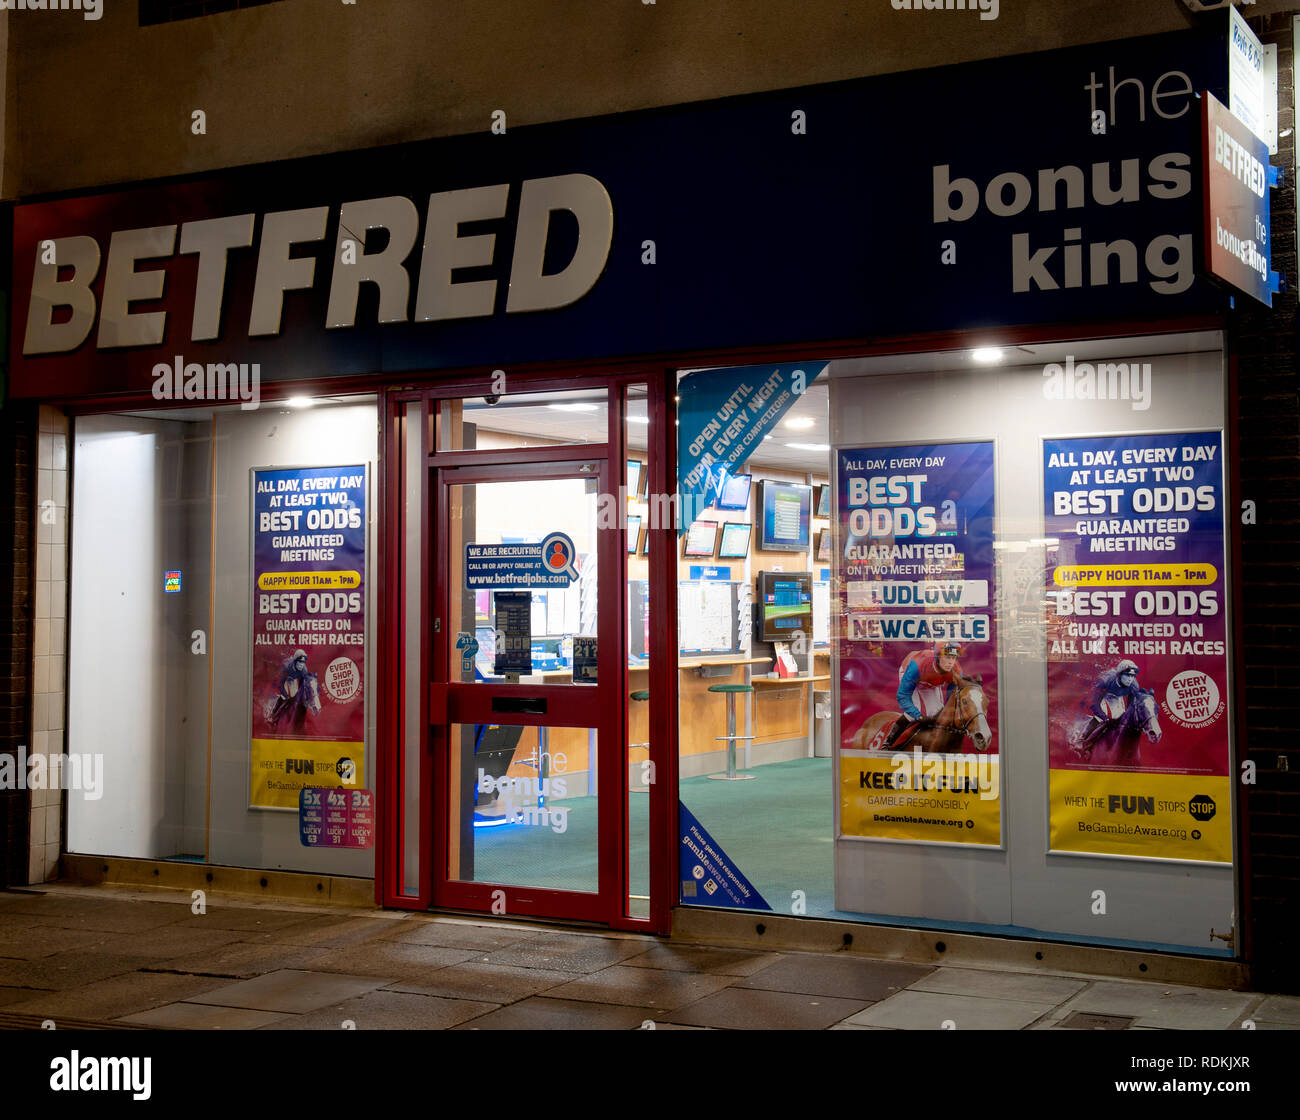 Betfred betting Shop, High Street, Cosham, Portsmouth, Hampshire, England, UK. - Stock Image